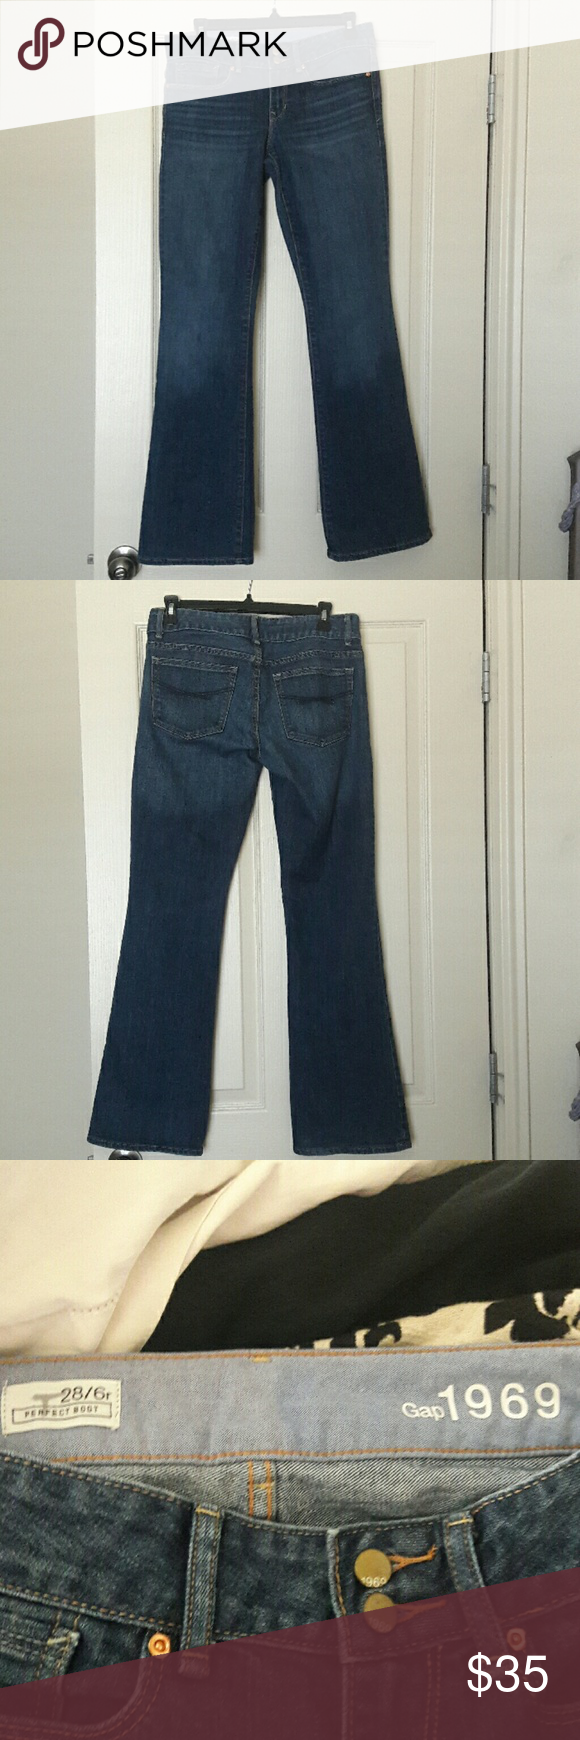 Gap Perfect Boot Jeans NWOT Brand new without tags gap jeans. Purchased and never wore ended up being too small for me. Any questions just ask! Gap Jeans Boot Cut